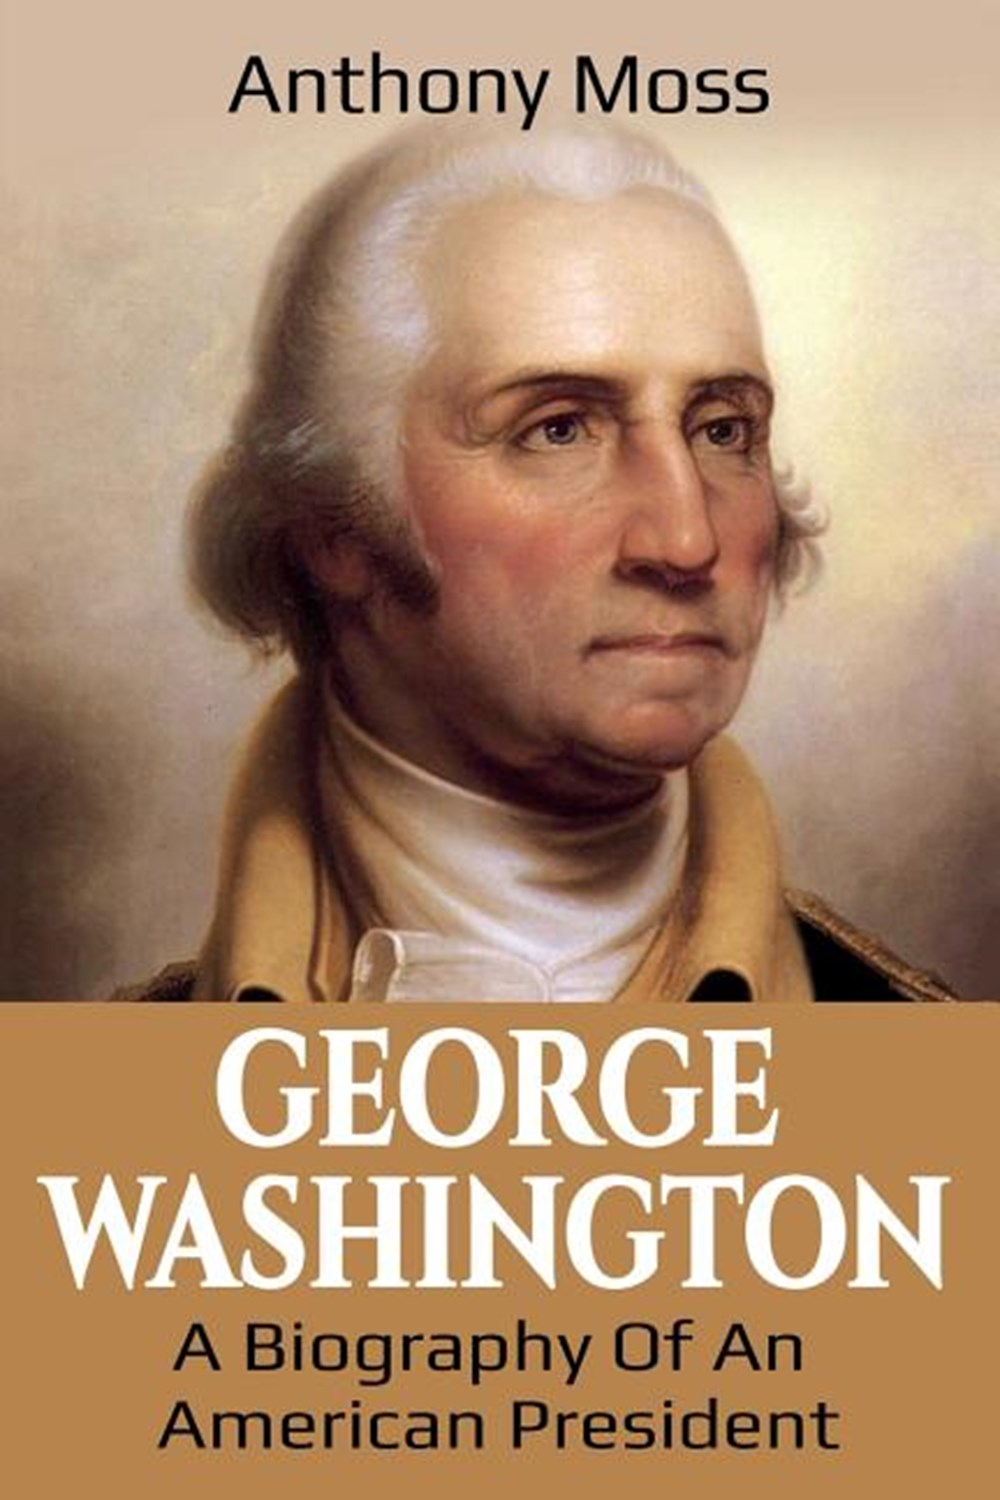 George Washington A Biography of an American President